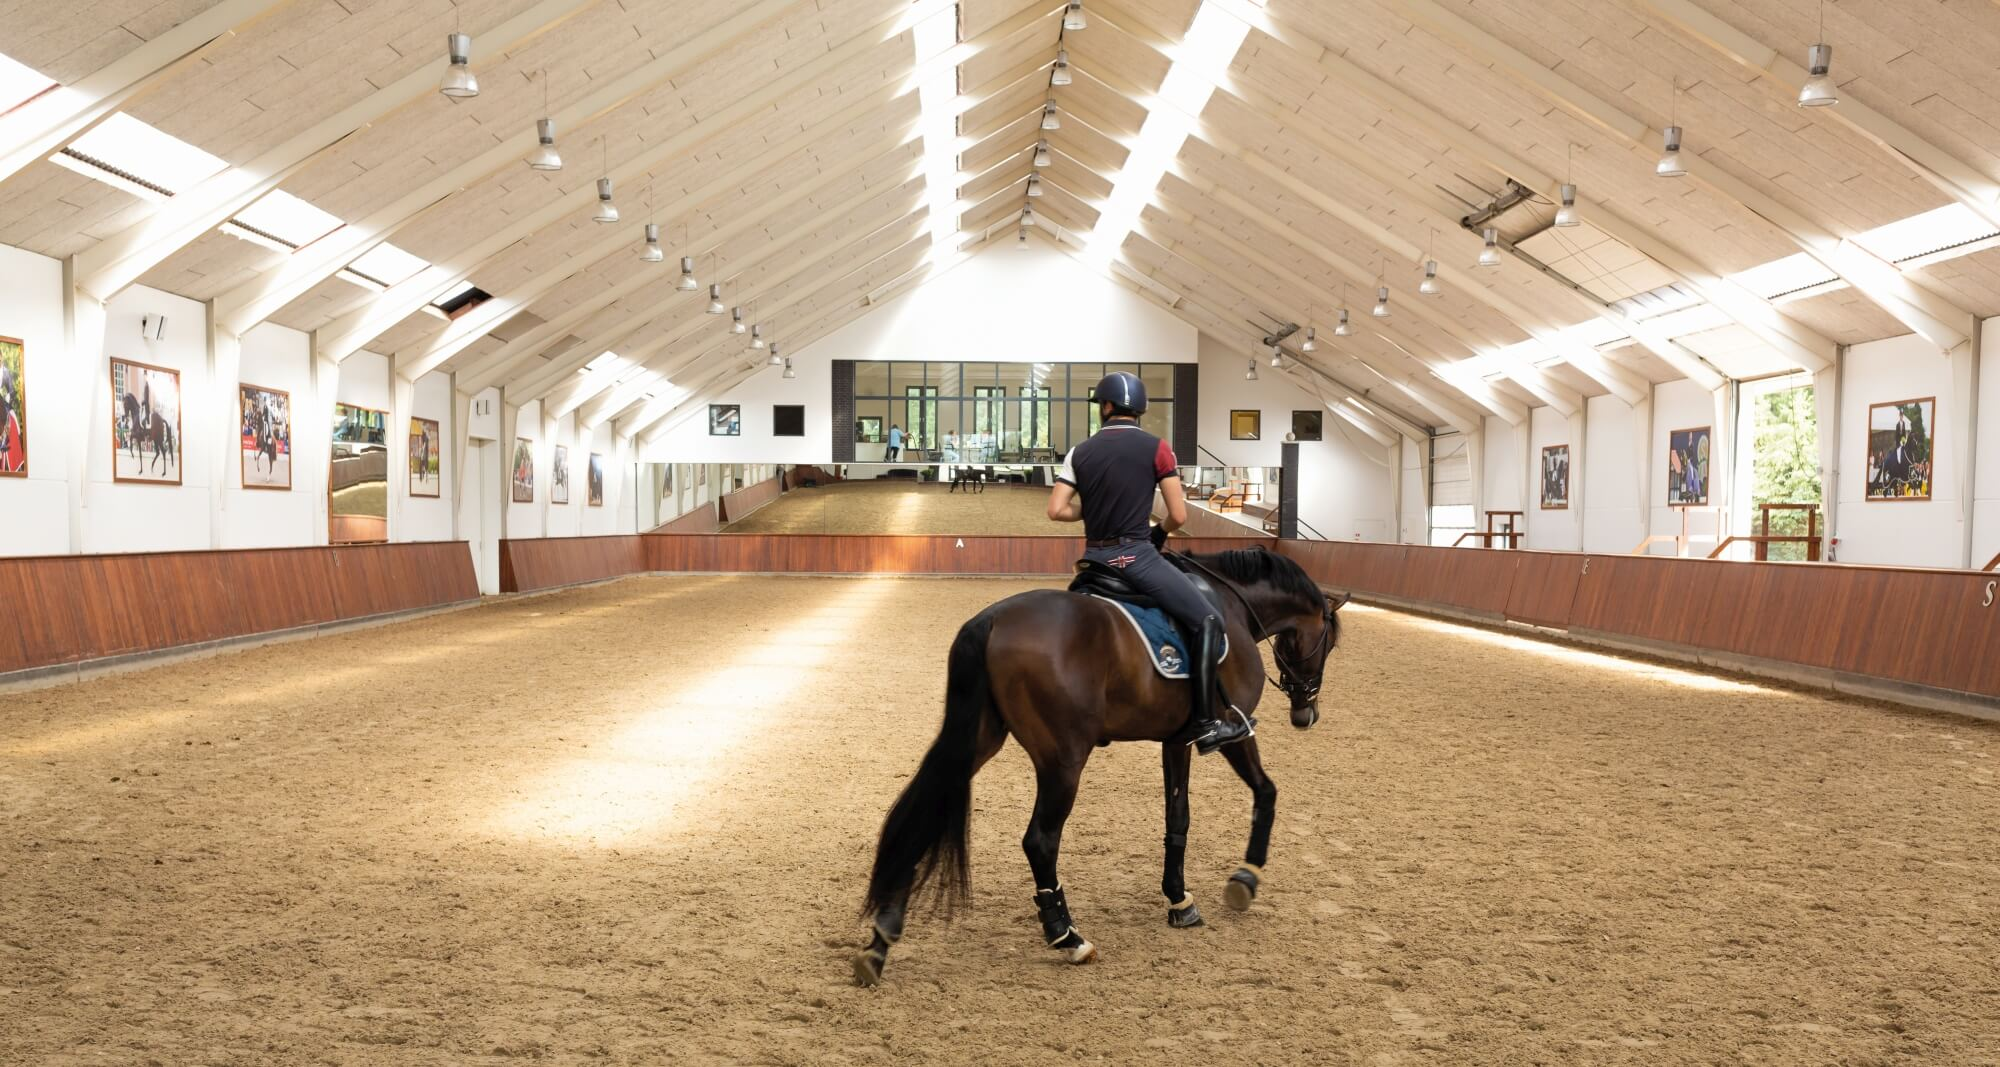 Rider riding a horse in an arena with wood barriers finished using Rubio Monocoat.